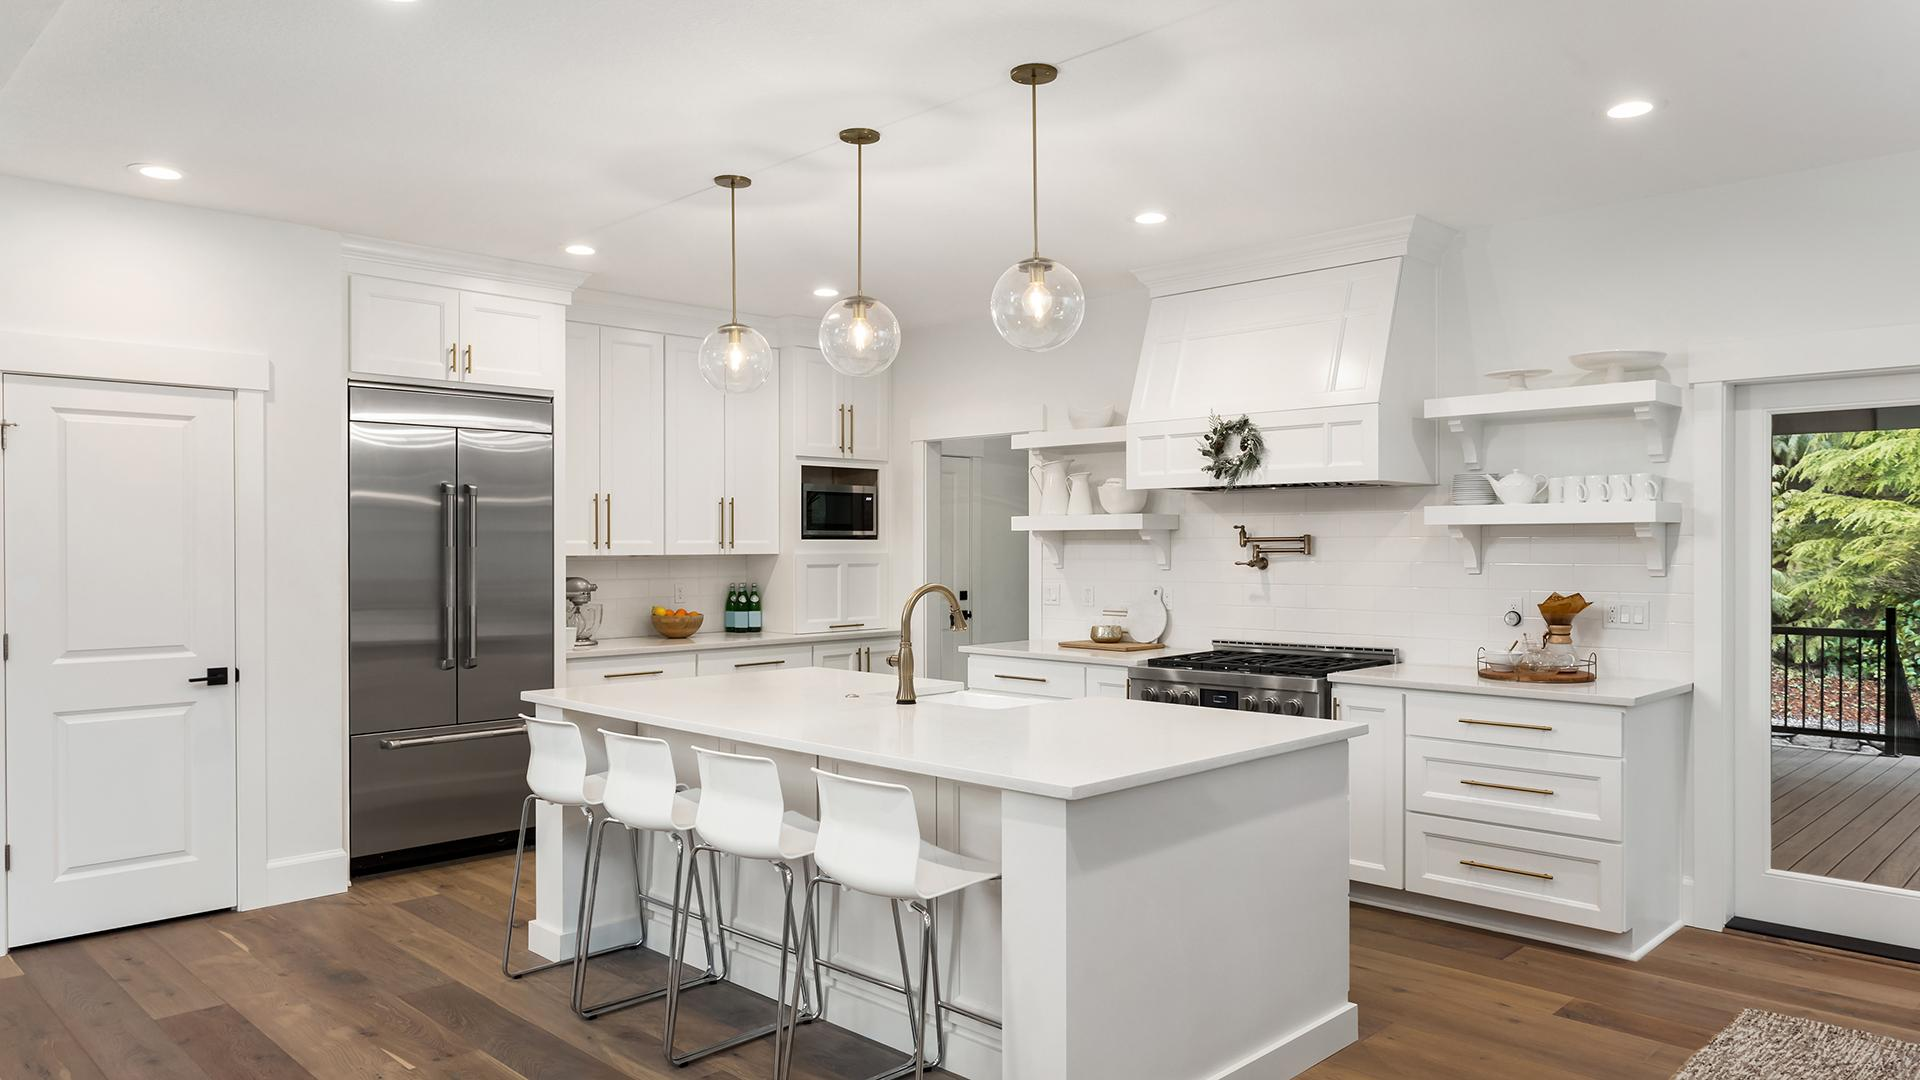 How High To Hang Kitchen Pendant Lights Rachael Ray Show